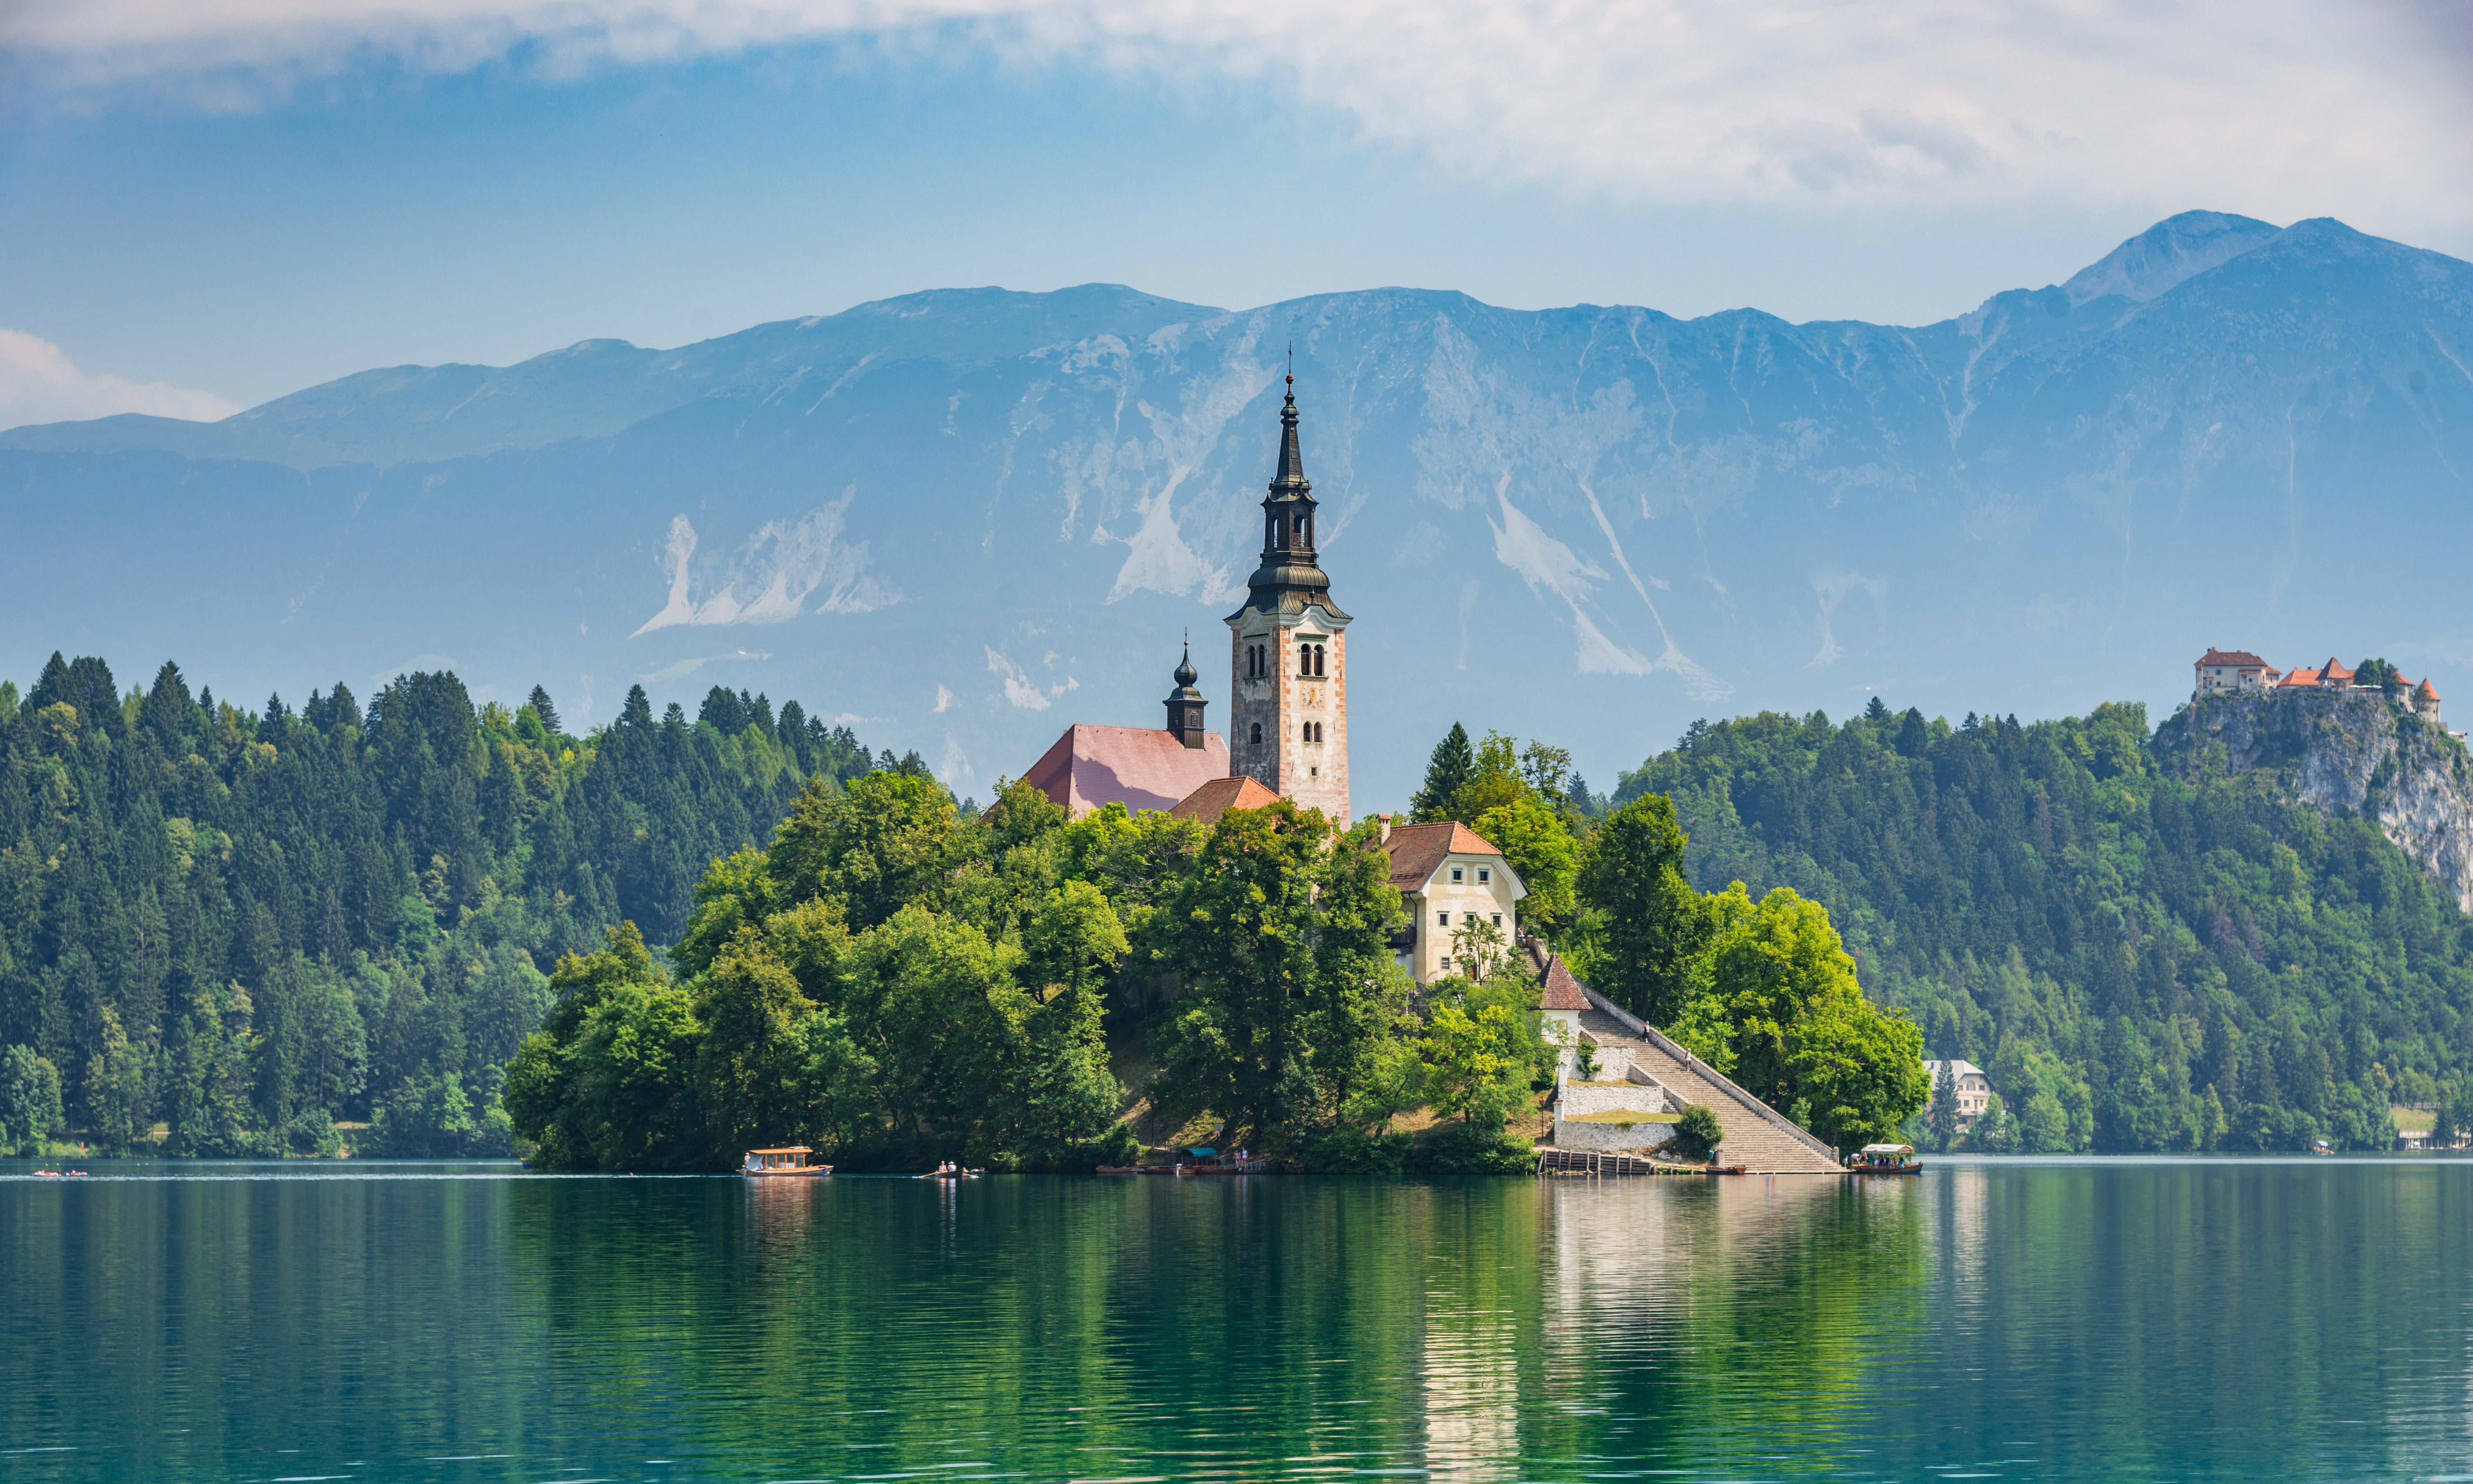 Why I fell in love with Slovenia